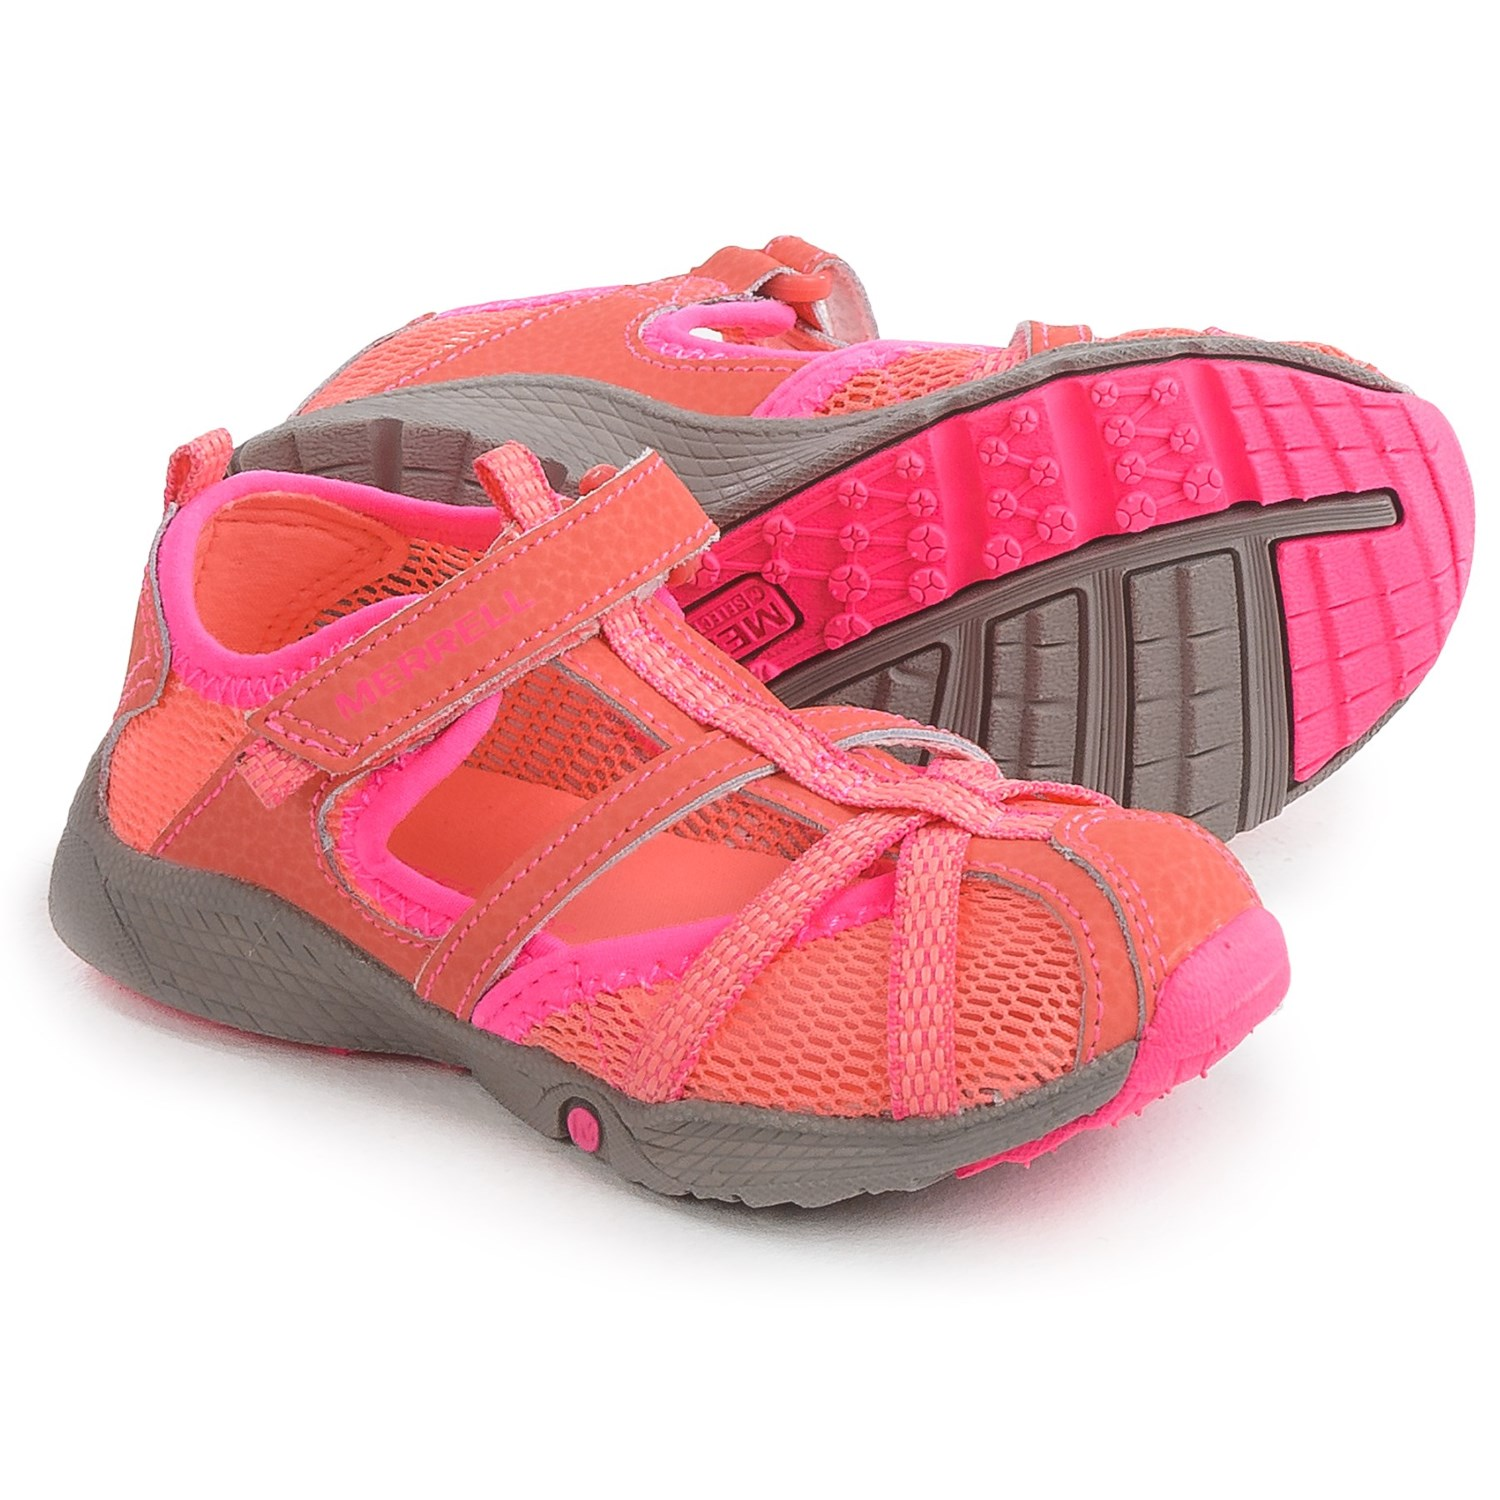 Merrell Hydro Monarch Junior Water Sandals For Little and Big Girls